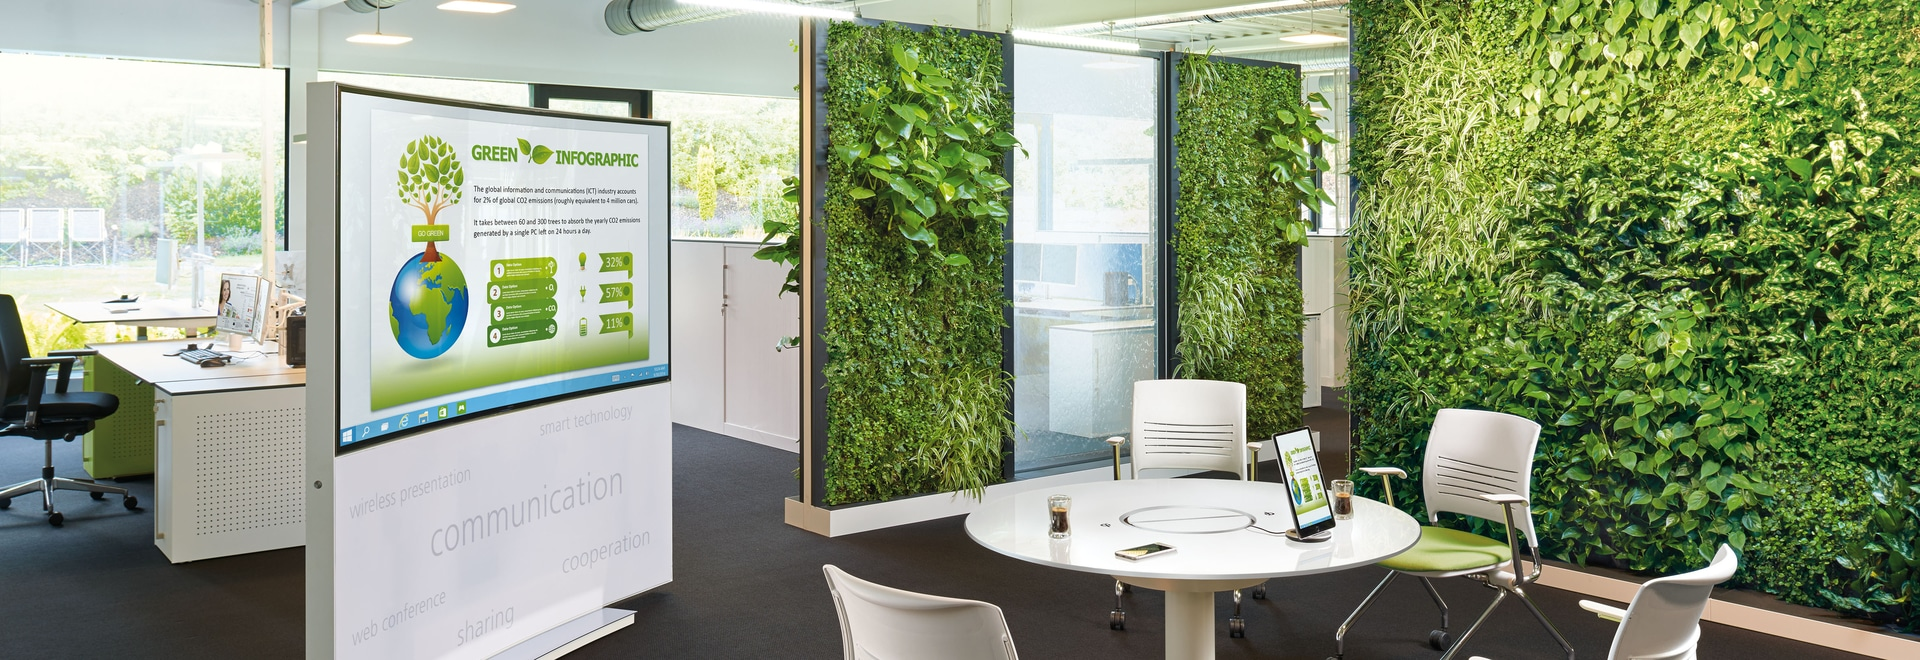 Office 4.0 – Transform the office of the future with water and green walls!